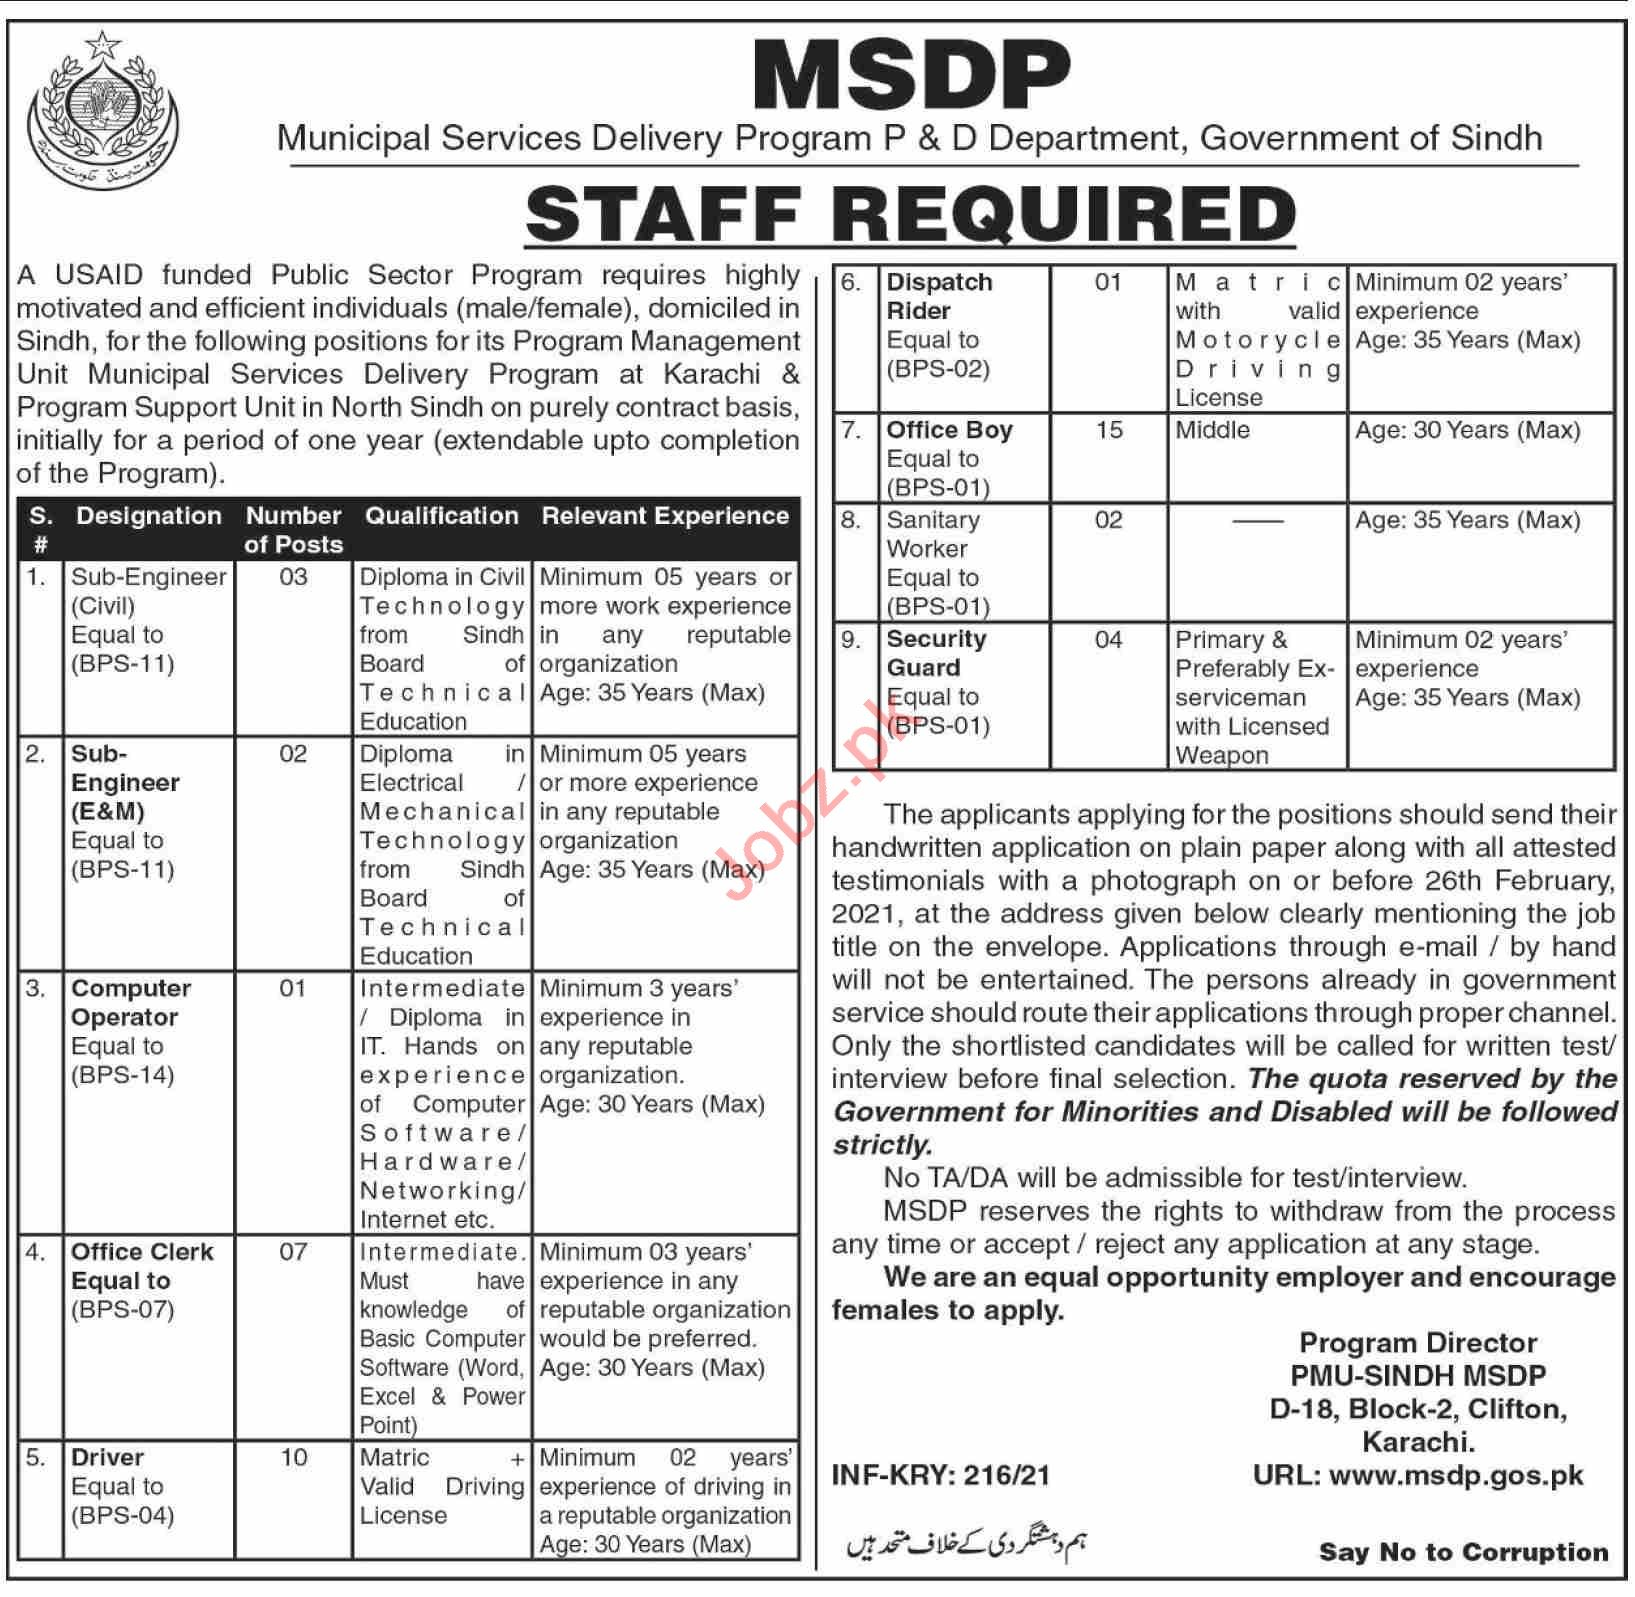 Municipal Services Delivery Program MSDP Sindh Jobs 2021